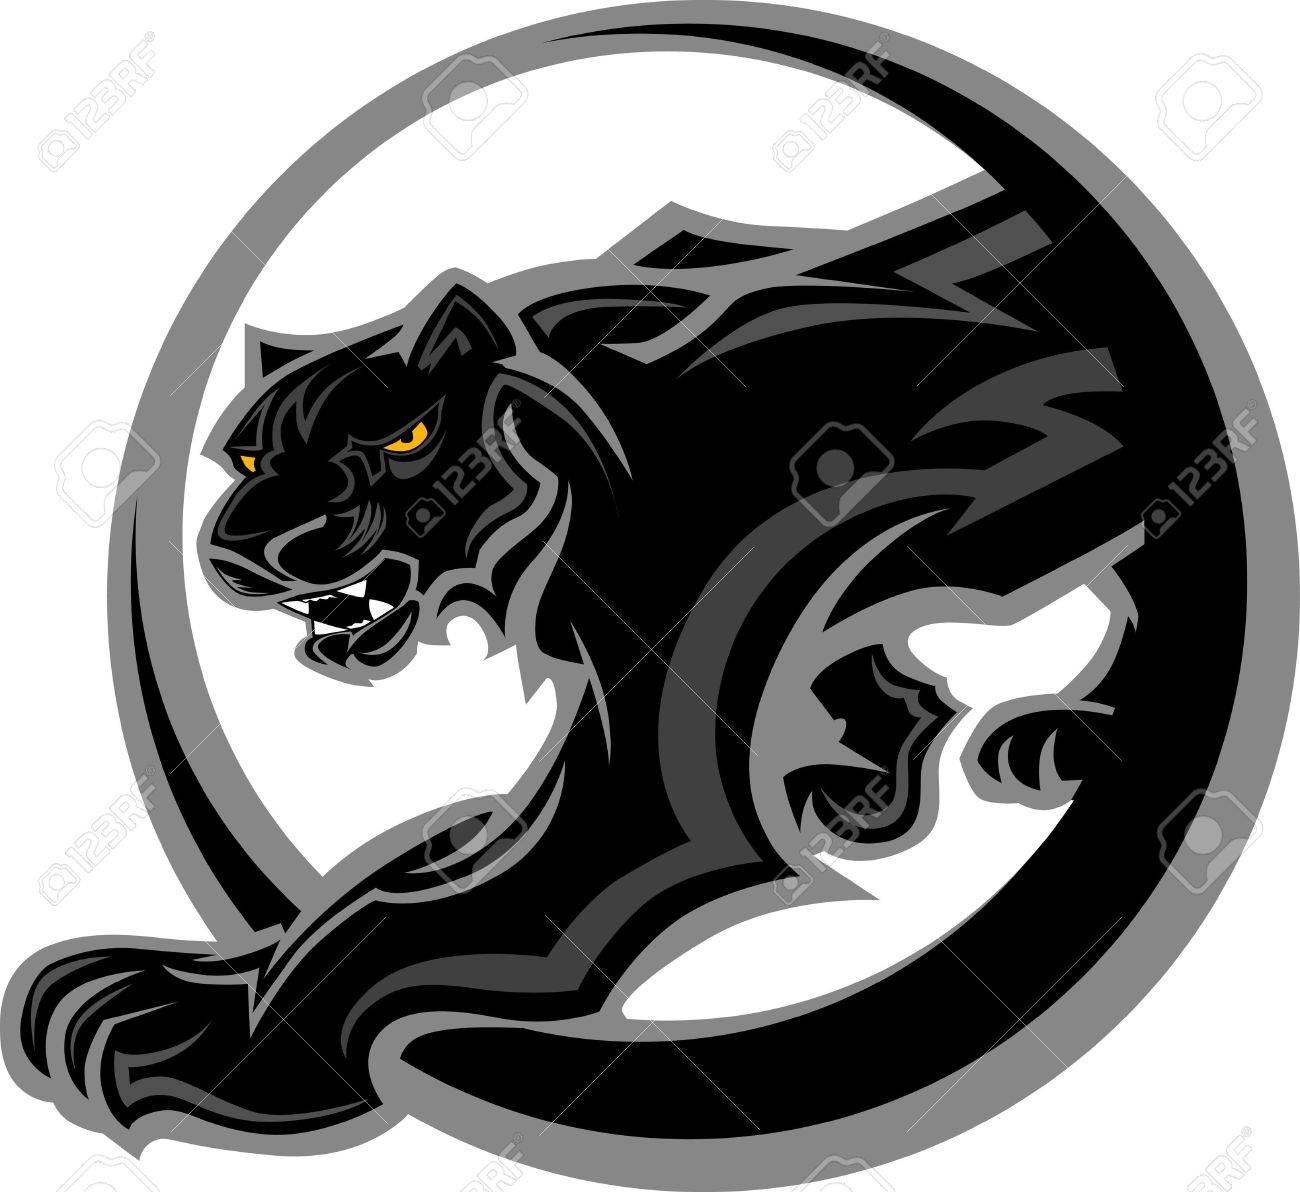 Graphic Mascot Vector Image of a Black Panther Body Stock Vector - 11375437